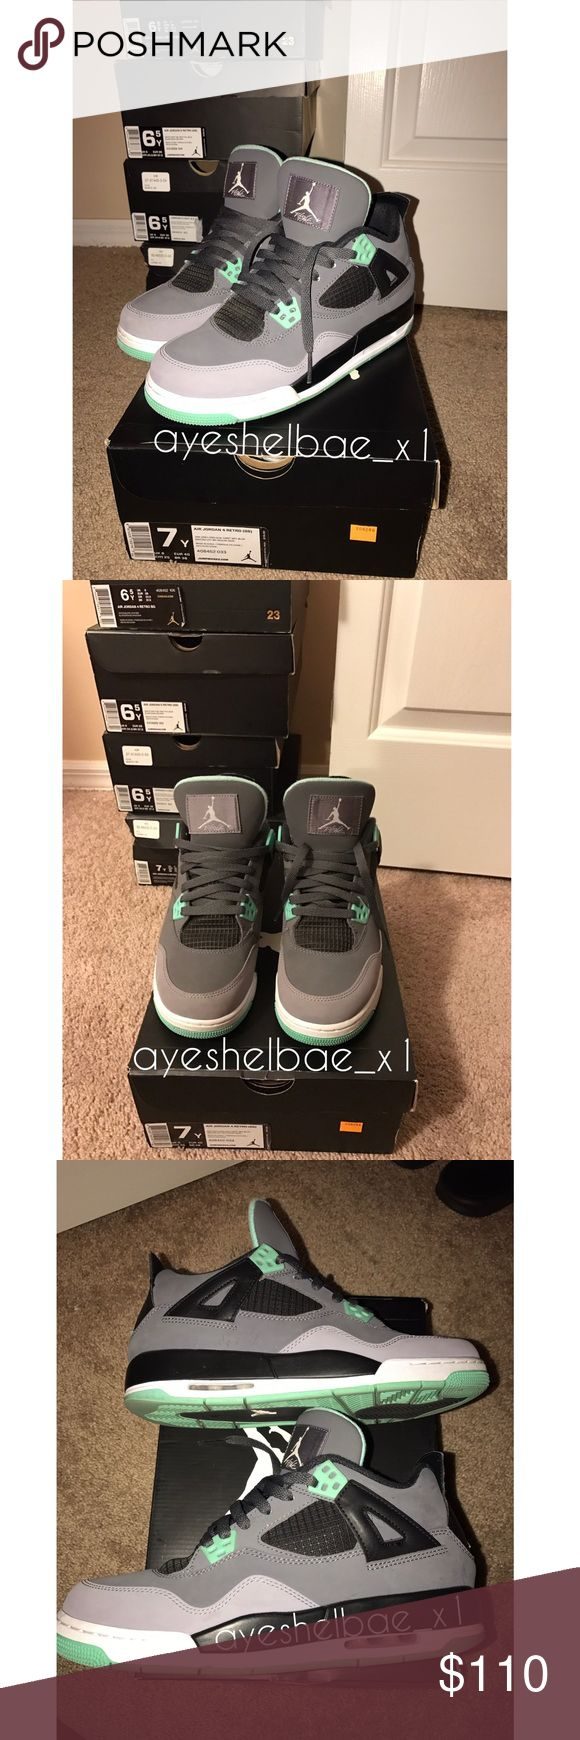 Nike Air Retro Jordan 4 Green Glows GOOD Condition 9/10 Slight Creasing && Soles Are Missing . Accepting Trades ! Nike Shoes Sneakers